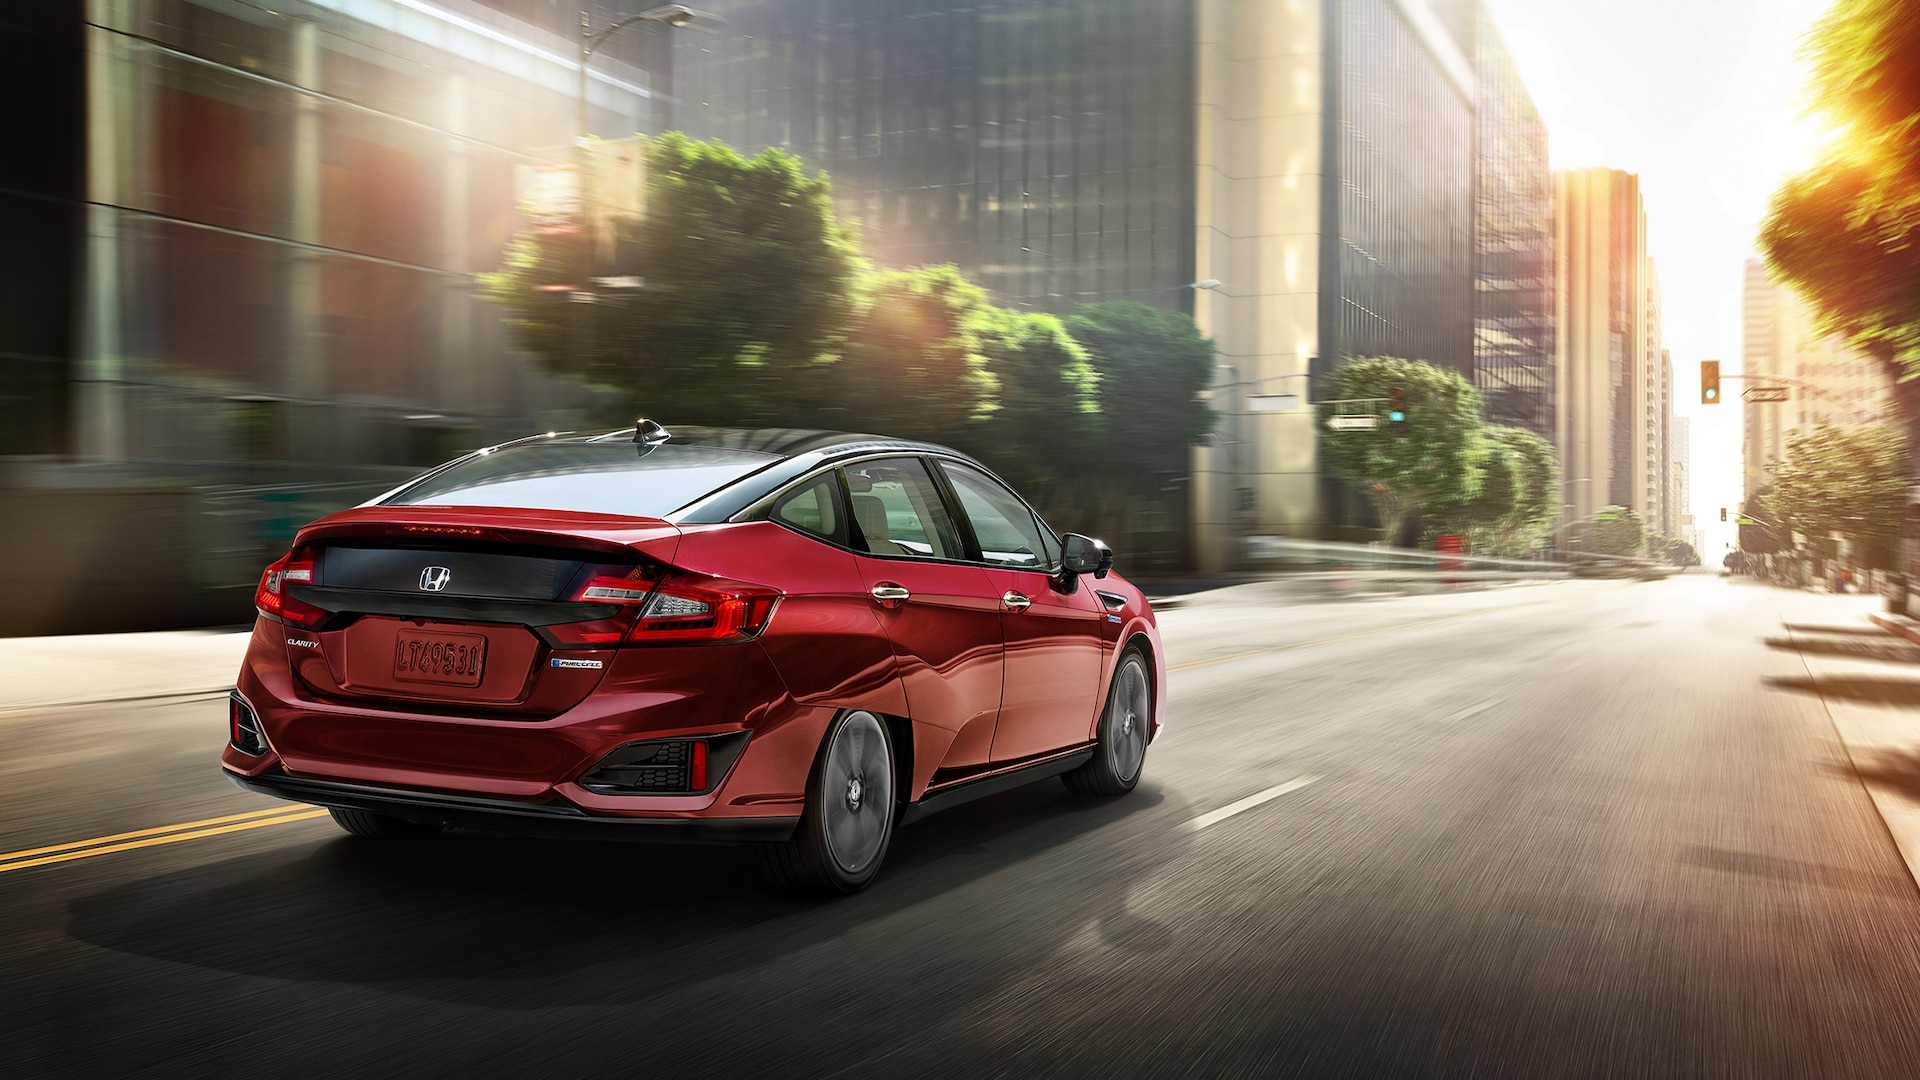 Rear passenger-side view of the 2021 Honda Clarity Fuel Cell in Crimson Pearl driving on a city street.